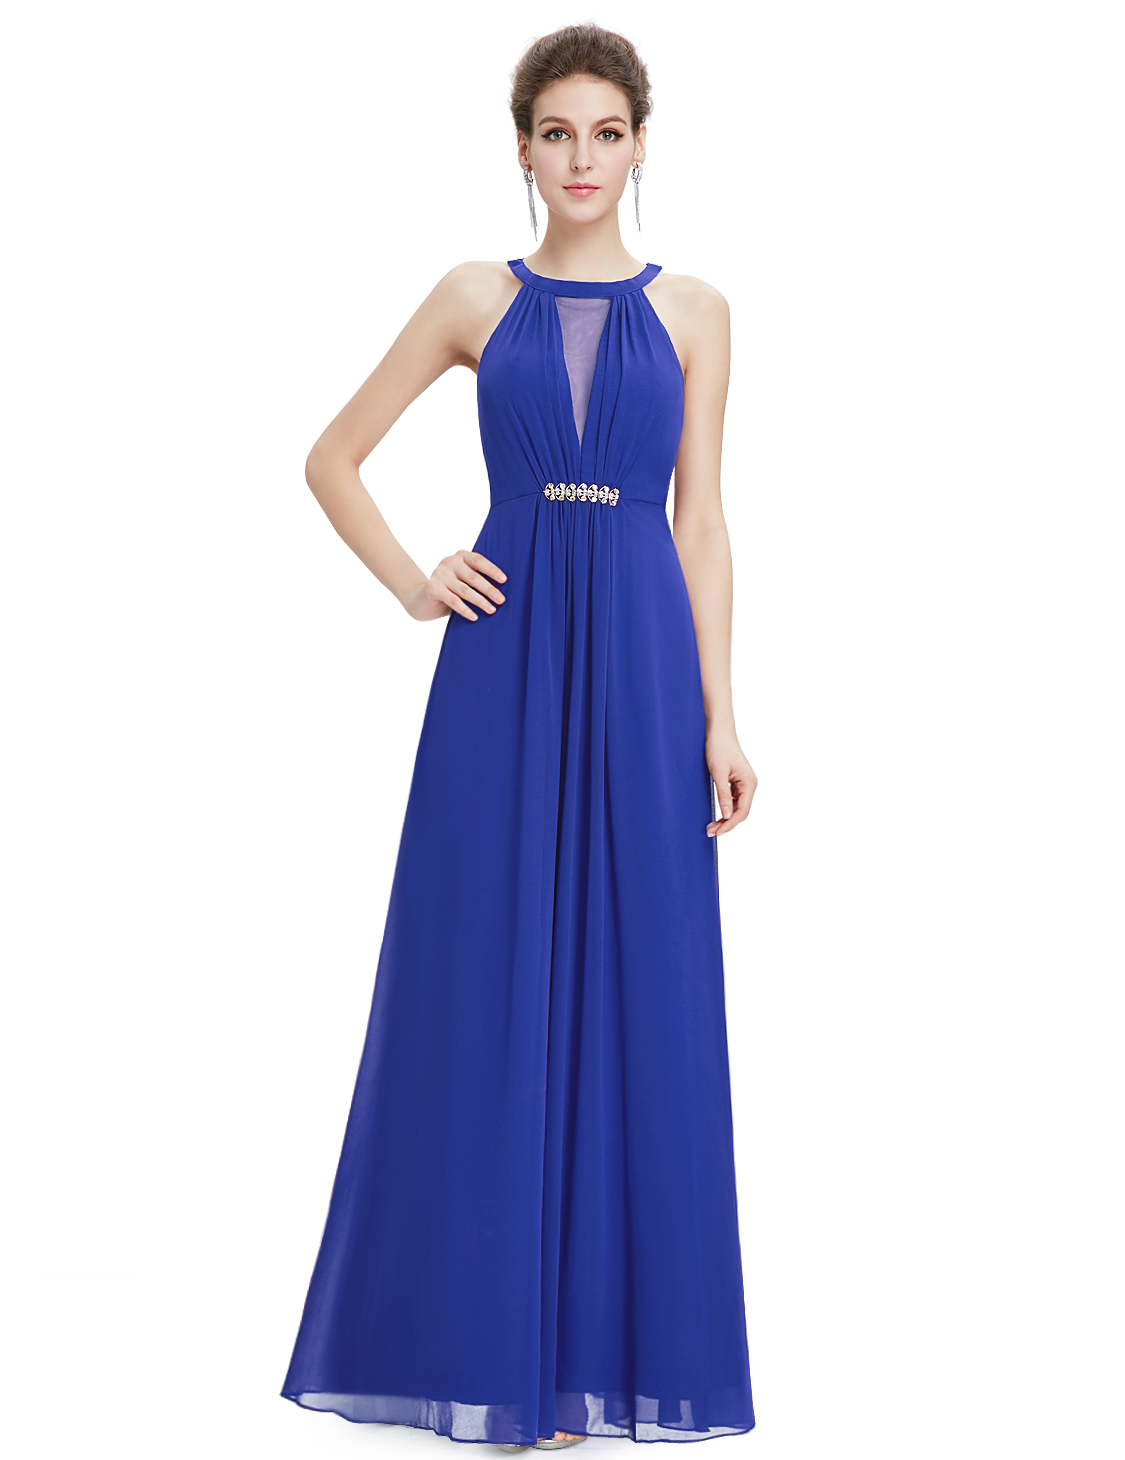 Lace-Sleeveless-Straps-V-Neck-Long-Prom-Bridesmaid-Dresses-09995-Ever-Pretty